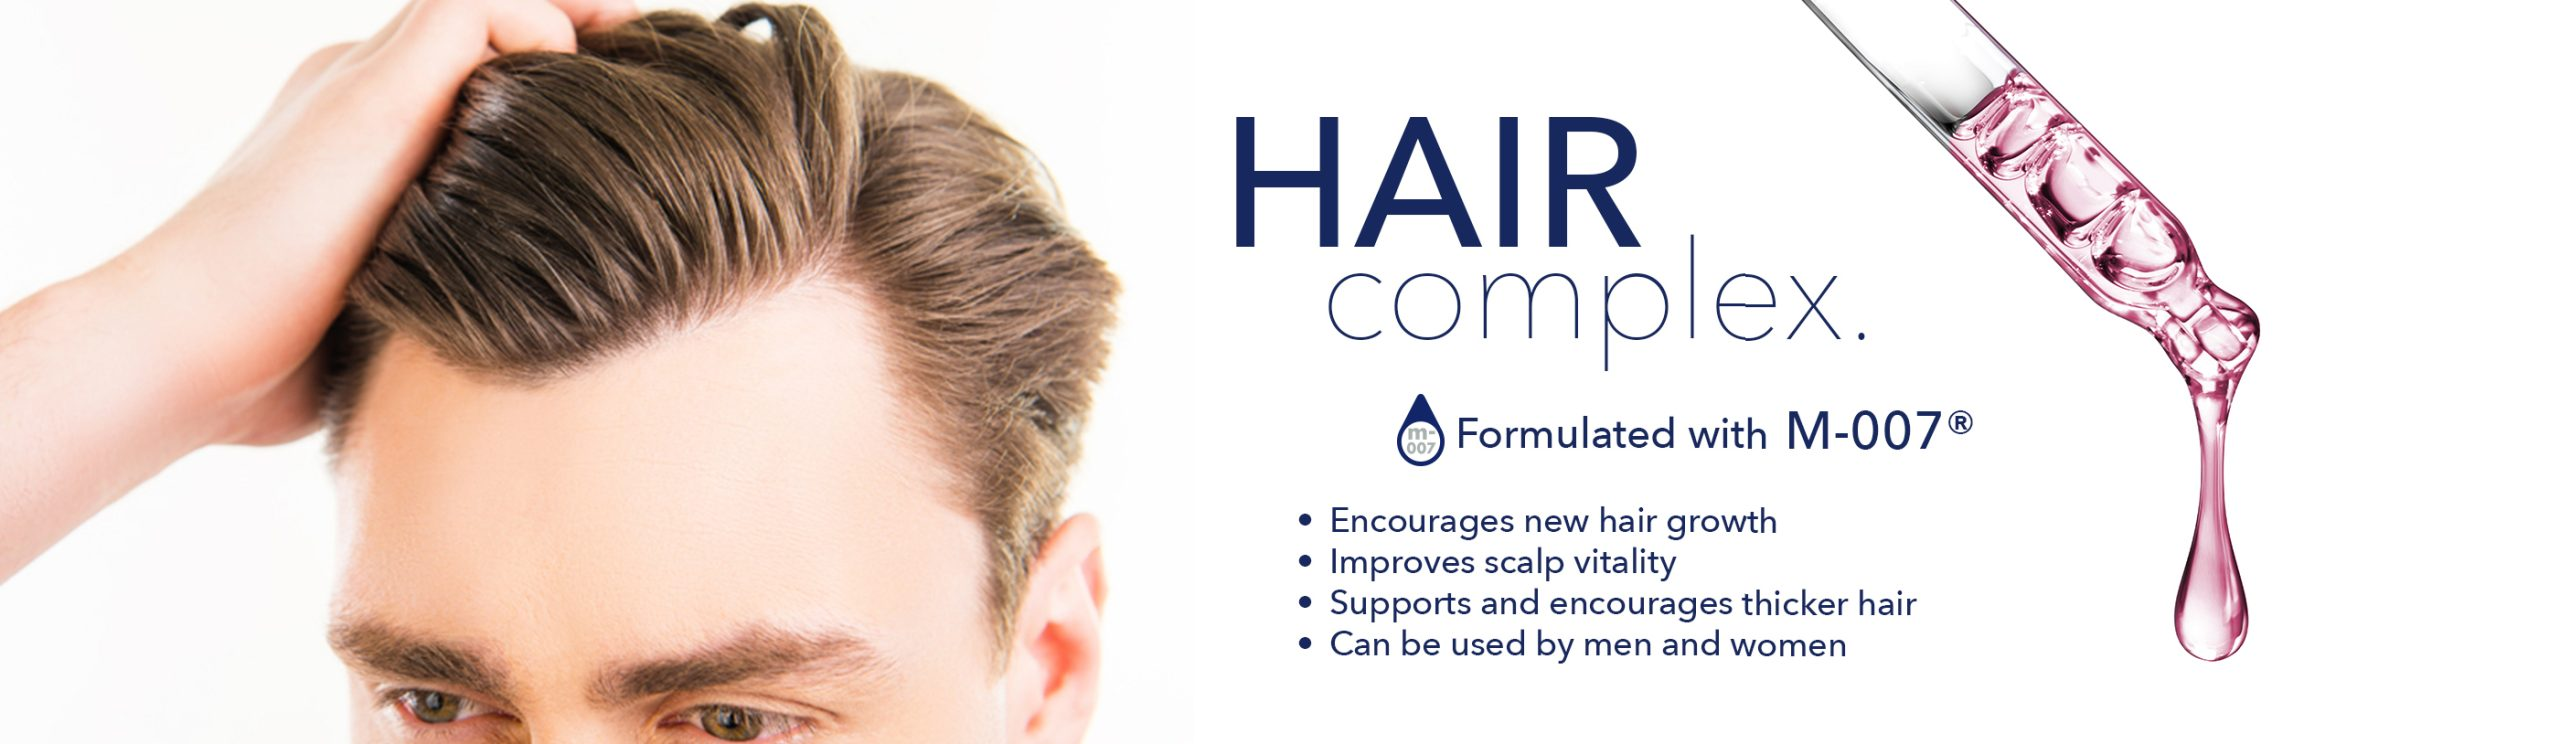 hfg, human growth factors, HPL, targeted, regeneration, facial serum, skin health solutions, hair health solutions, biome cleanser, clear skin, clean skin, m-007, boosting, treatment and care, skin care, hair care, omni, collagen, elastin, rebuild, cell health support, #loveomniskin